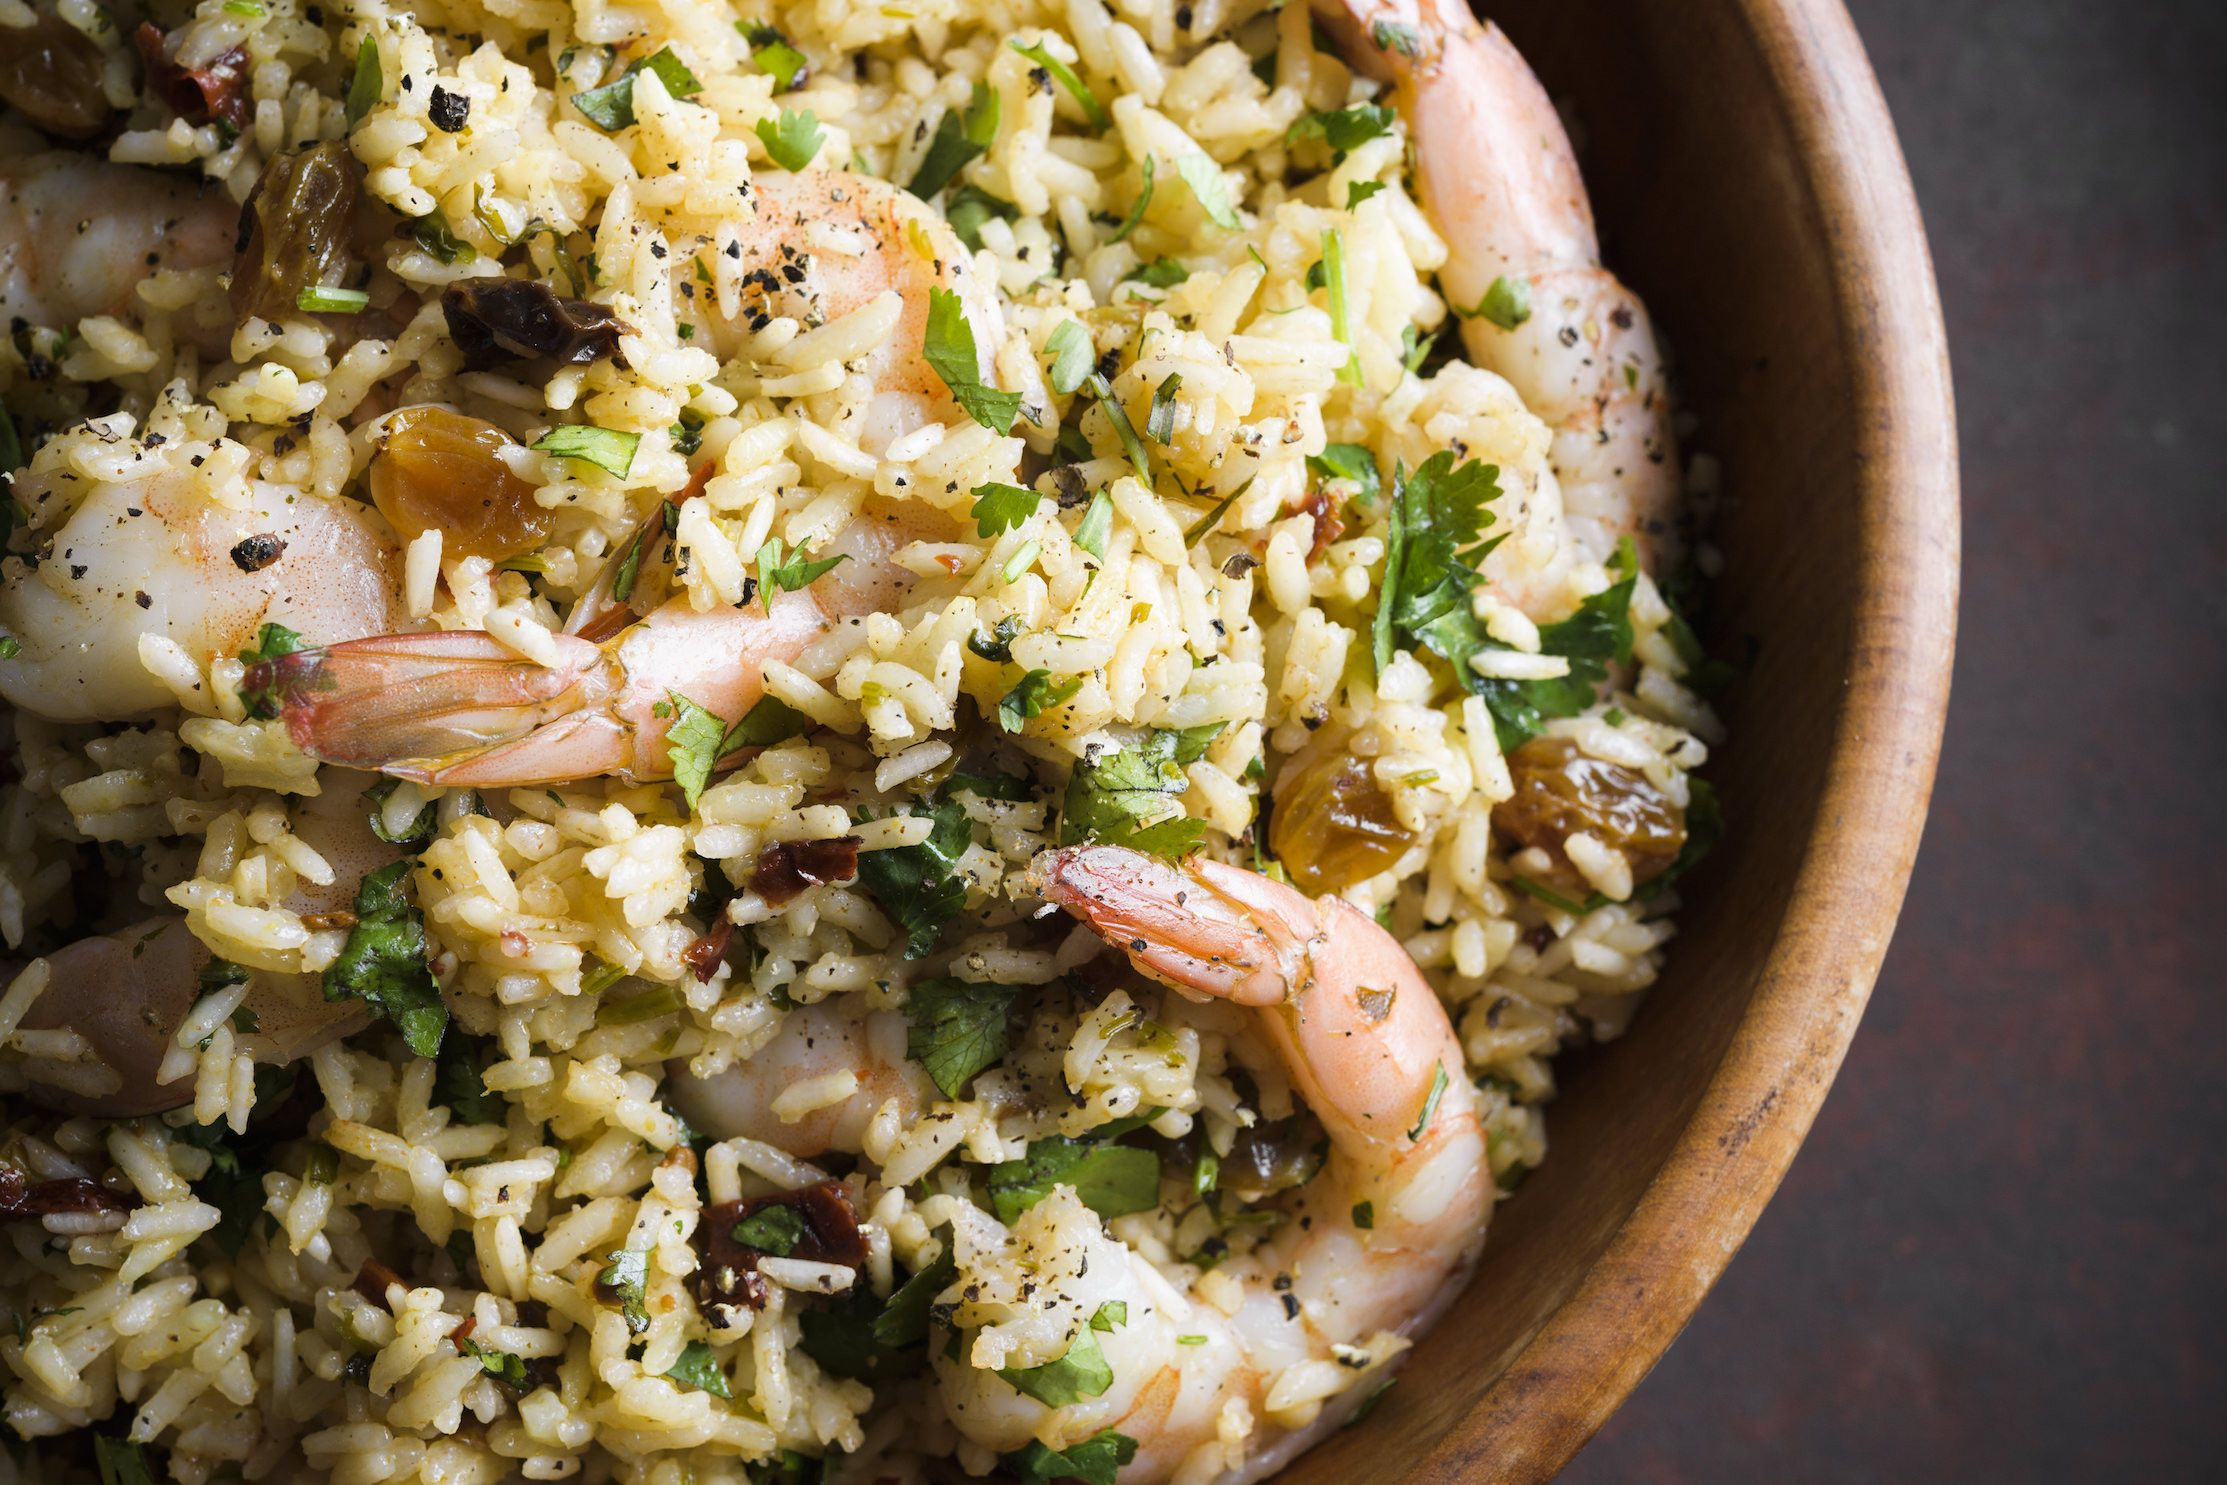 Chipotle Rice with Shrimp and Cilantro